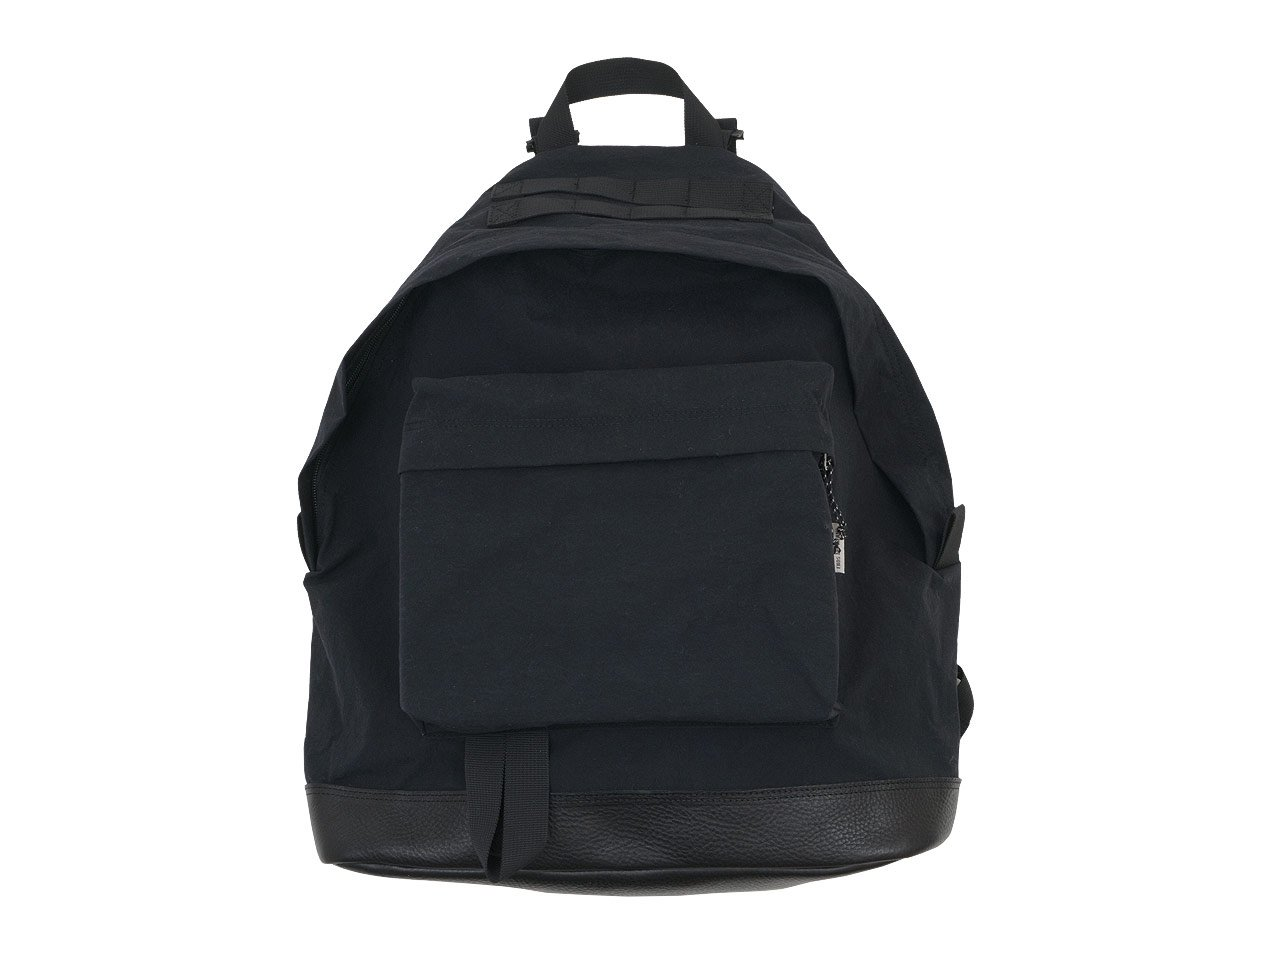 ENDS and MEANS Daytrip Backpack Leather Bottom BLACK